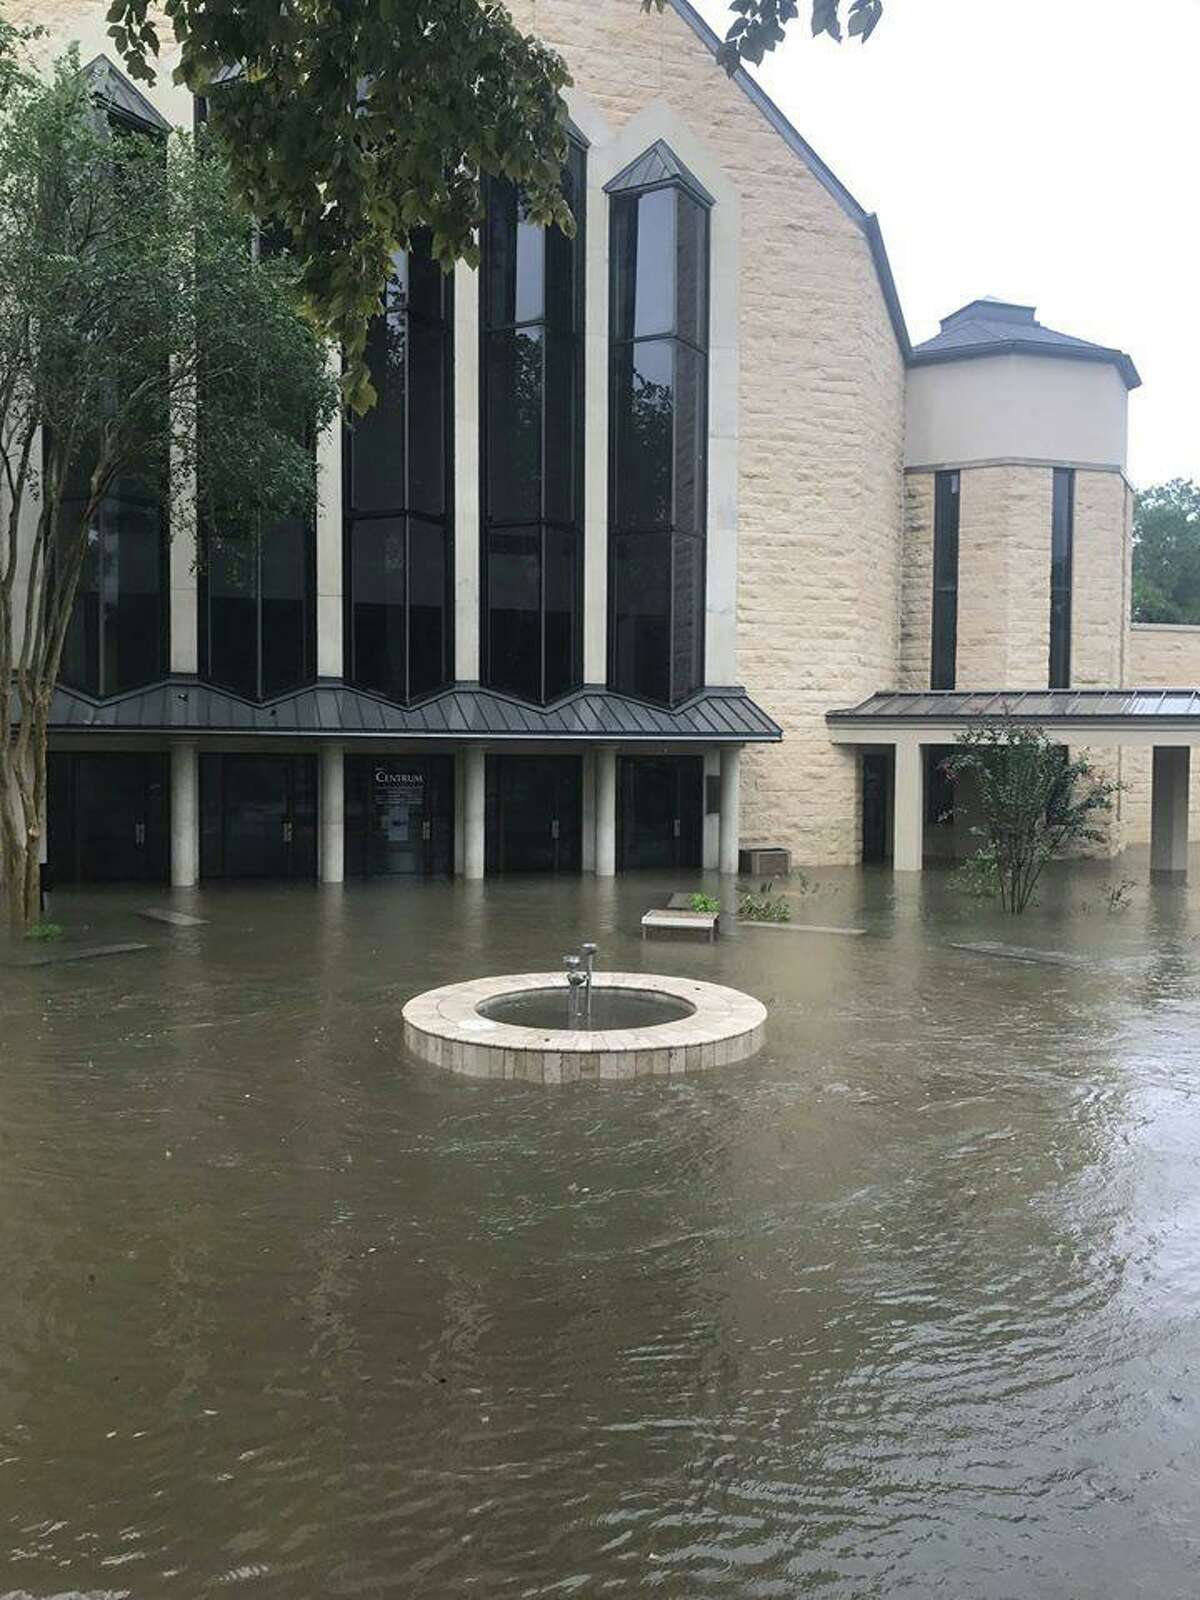 The Centrum, part of the Cypress Creek Christian Community Center, is scheduled to reopen by Christmas 2020 after suffering damage during Hurricane Harvey in 2017.